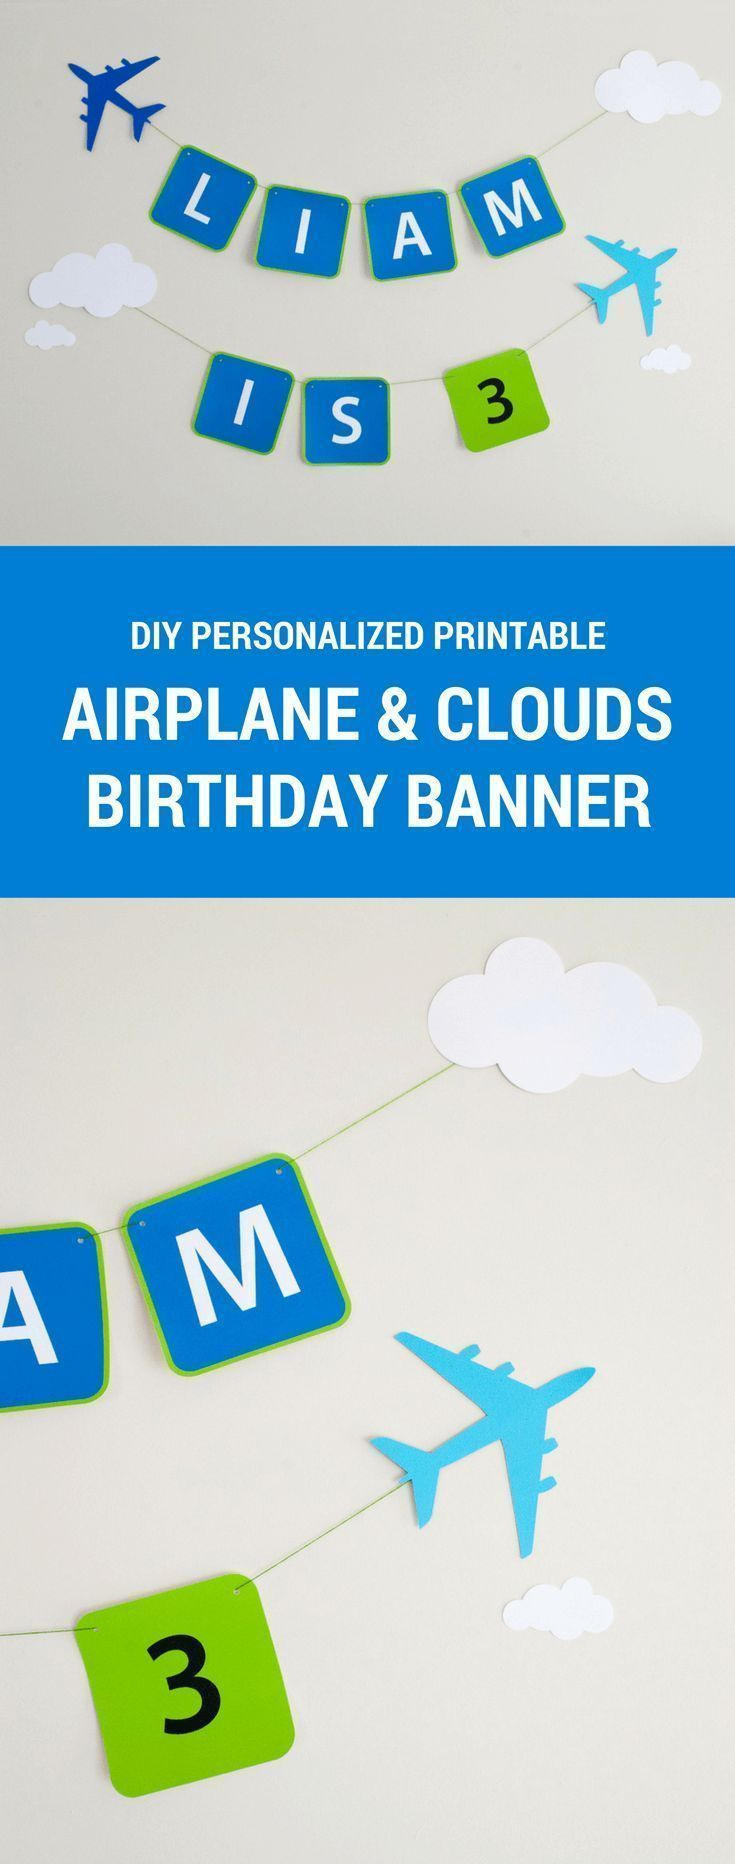 Printable Airplane Happy Birthday Party Banner for a Modern and Classy Airplane or Airport Birthday Party. Just download, type to personalize, cut and hang! #happybirthday #banner #birthdaybanner #boysbirthday #airplane #party